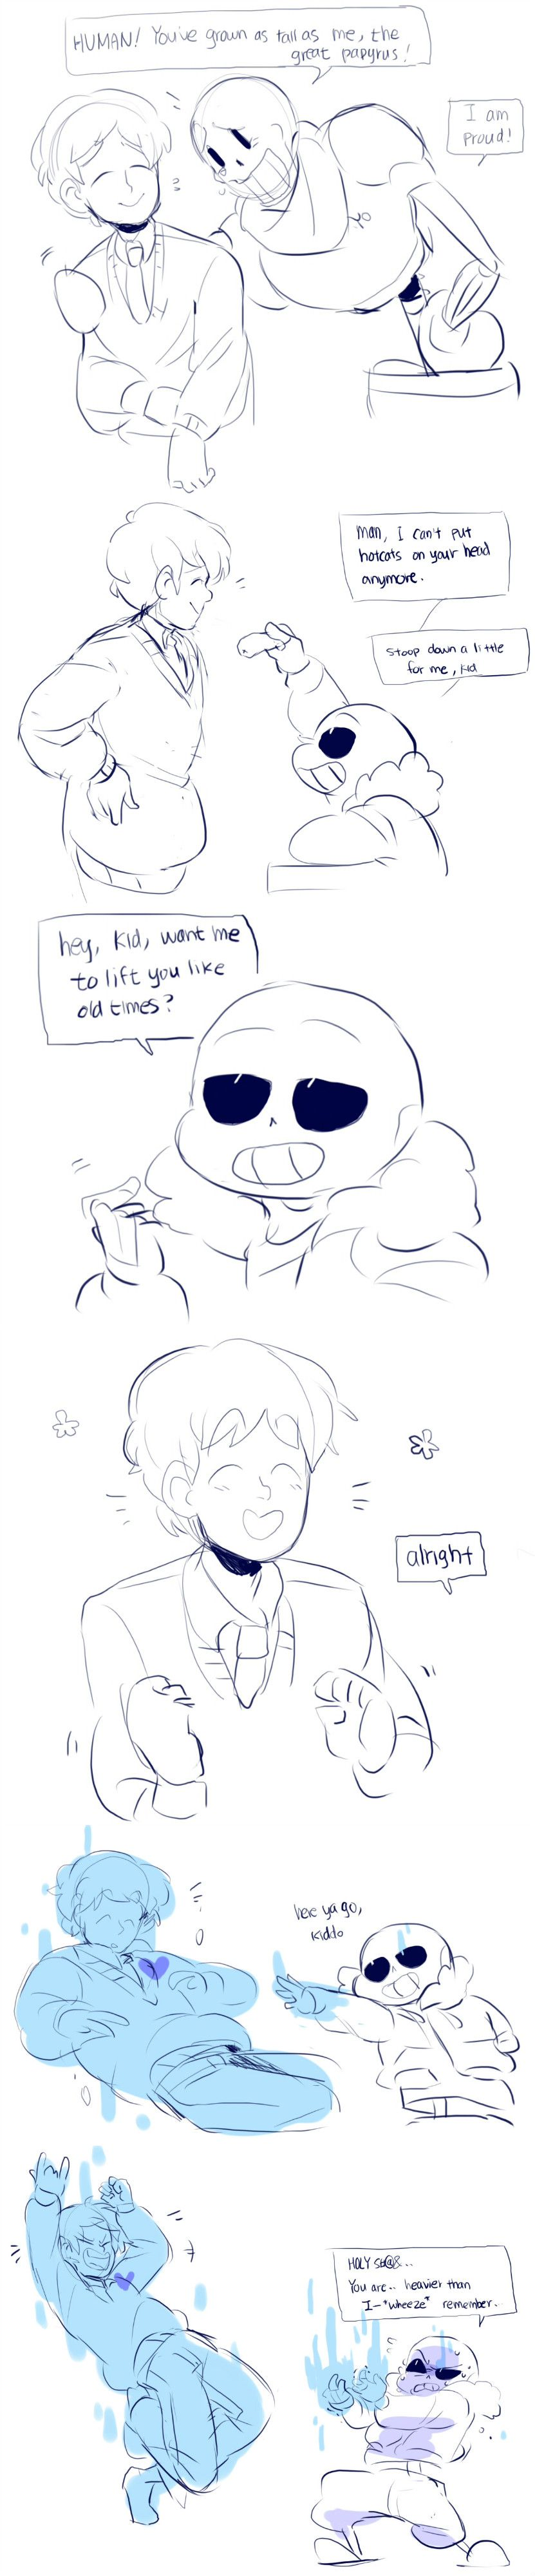 Frisk, Papyrus, and Sans - comic - http://ttoba.tumblr.com/post/133355629294/frisk-now-a-highschooler-visits-underground-to